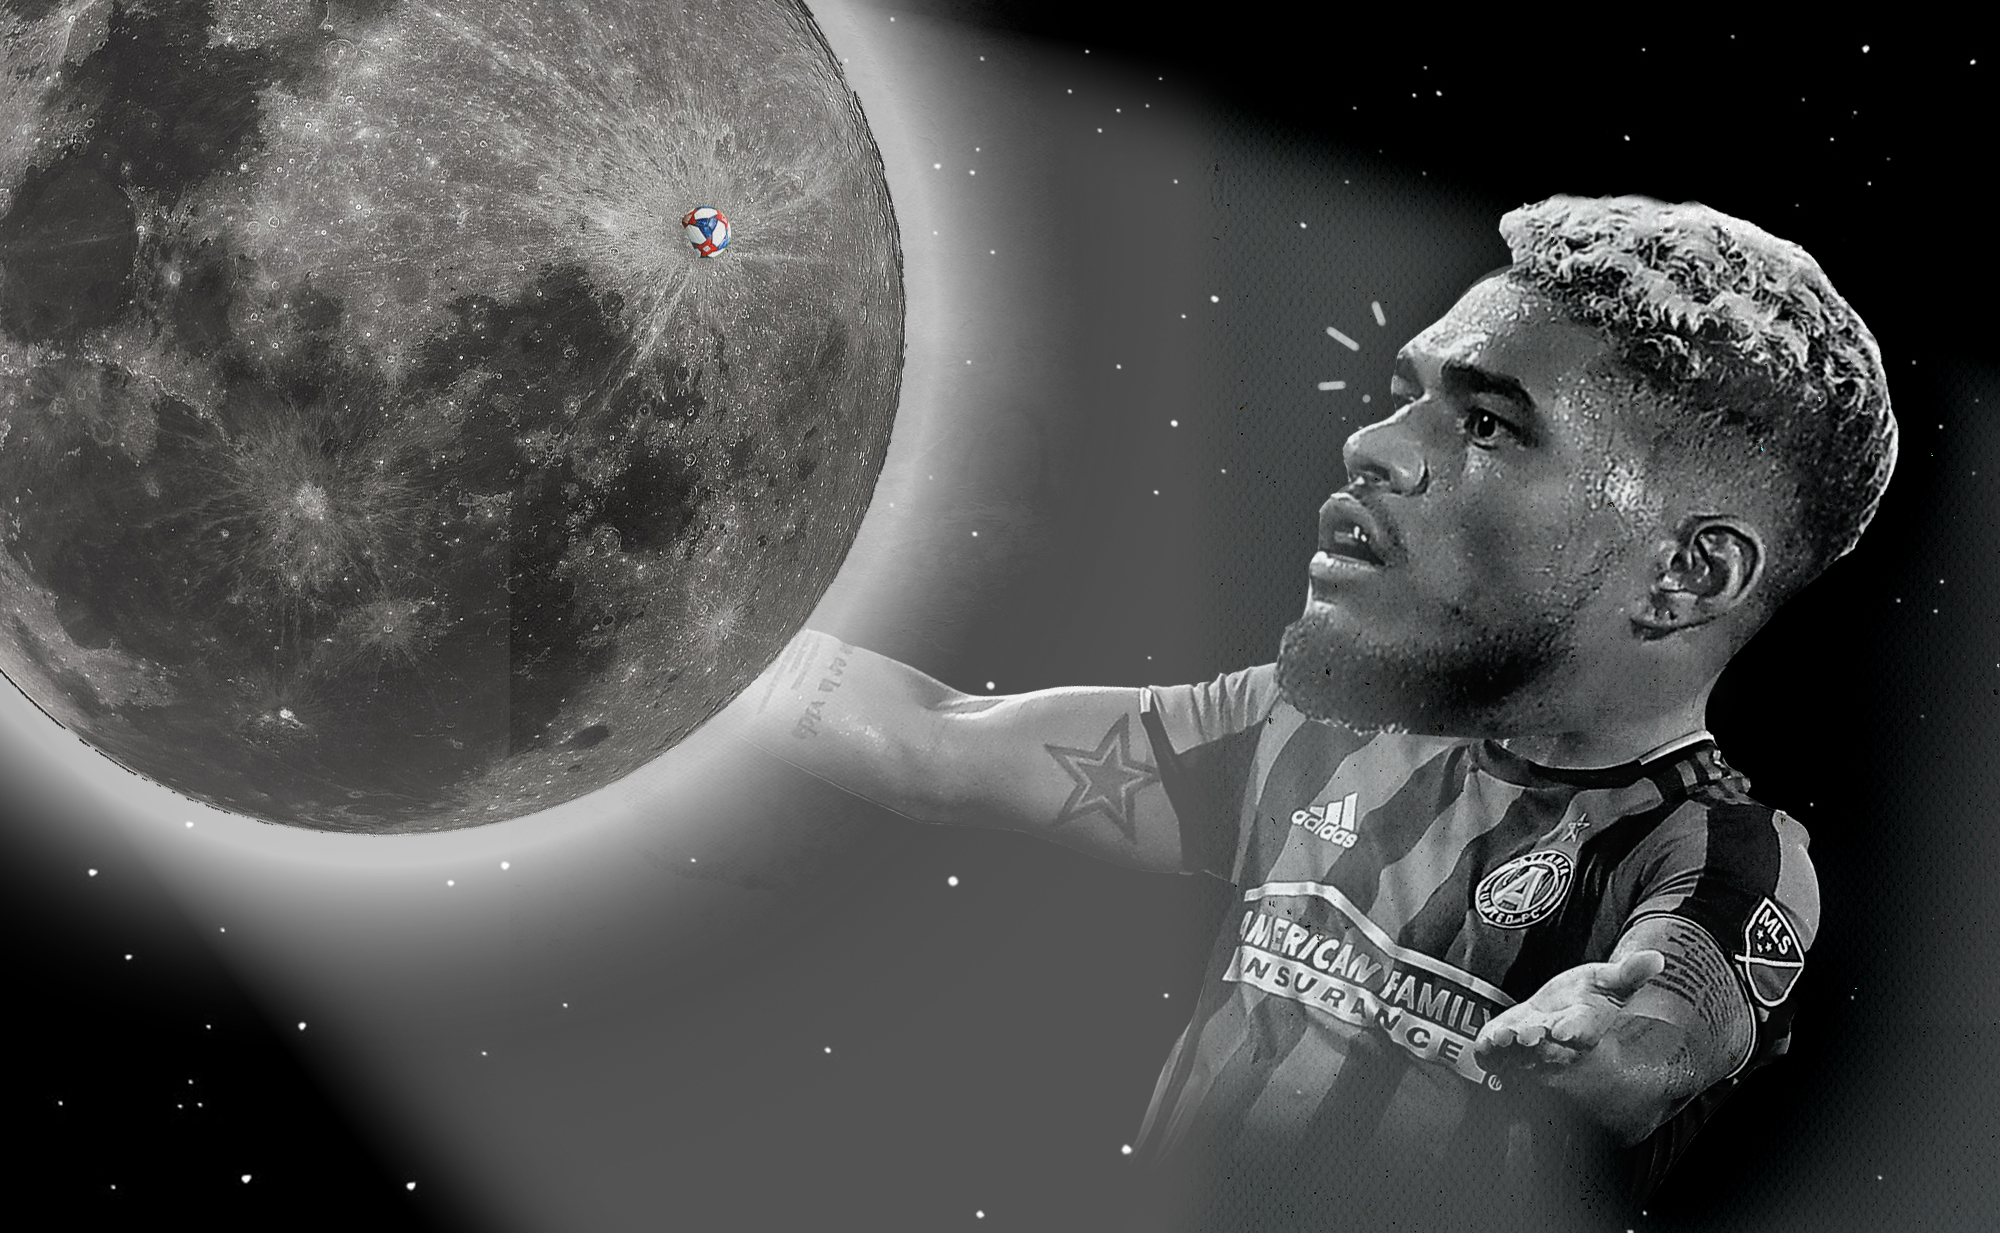 Josef Martínez loves the moon